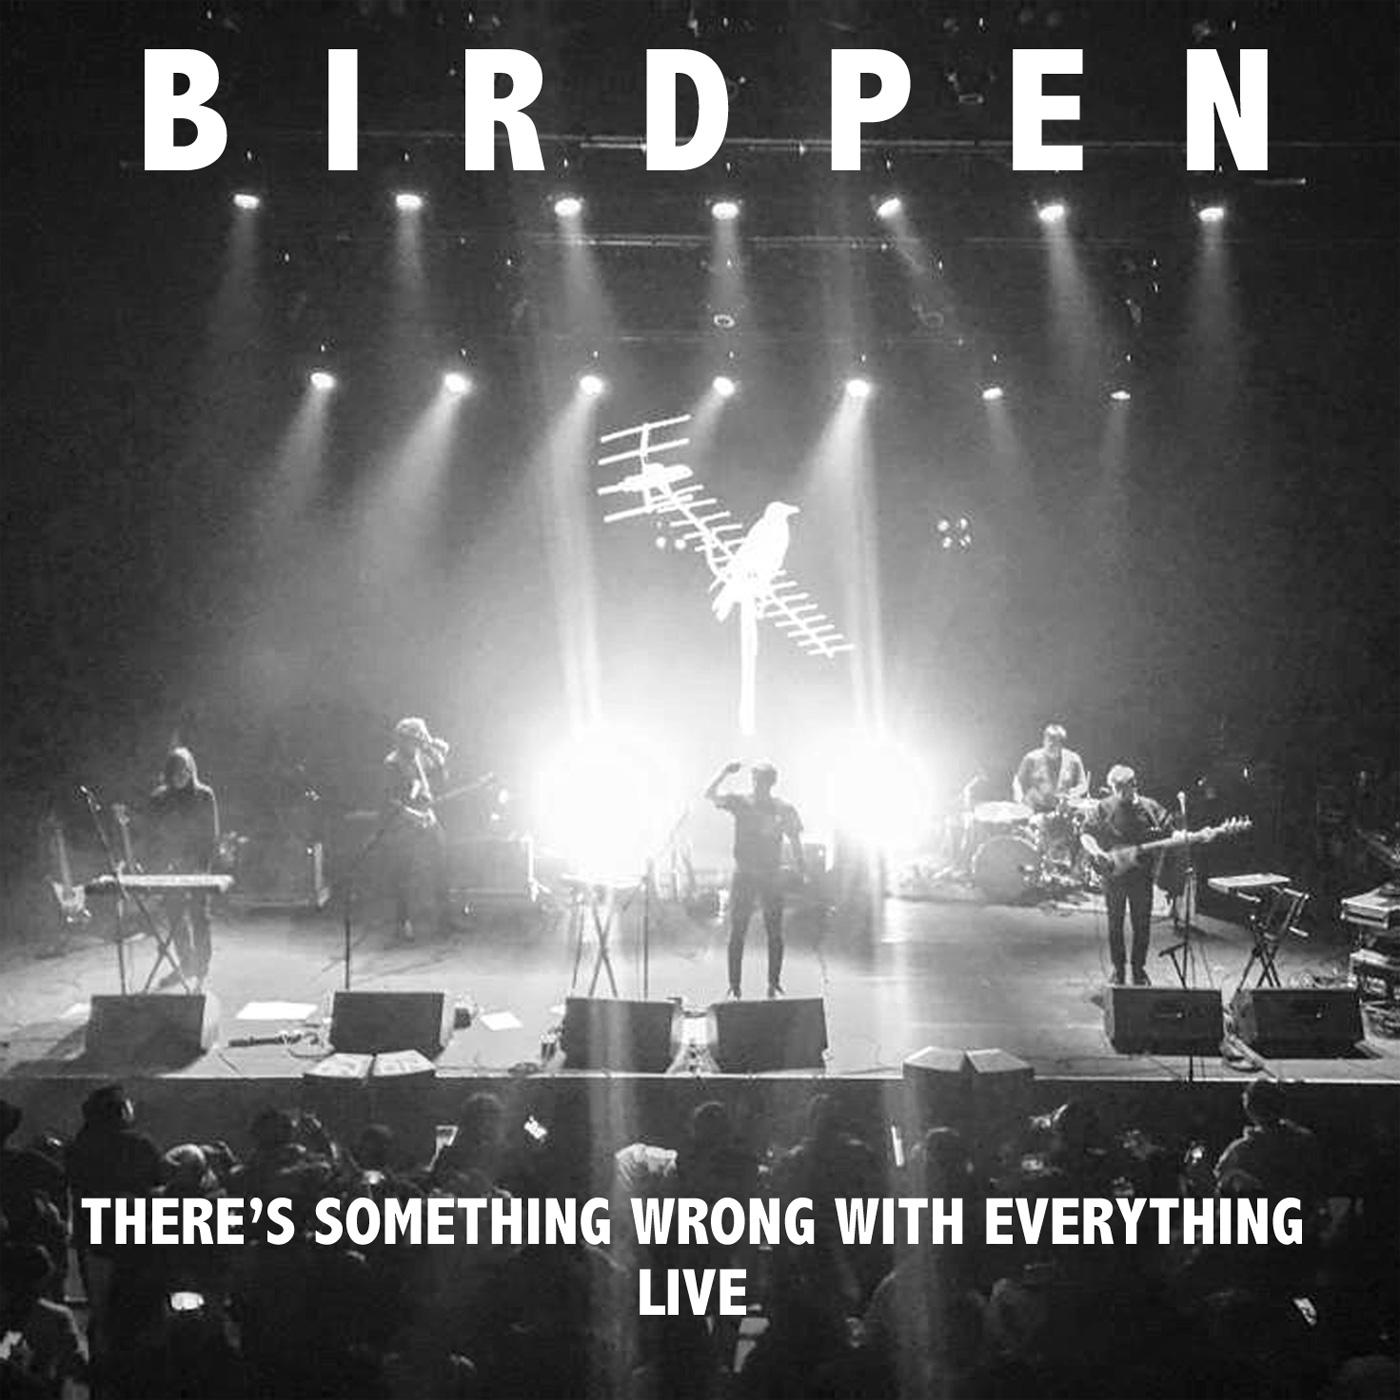 Buy Online Birdpen - There's Something Wrong With Everything Live Digital Album